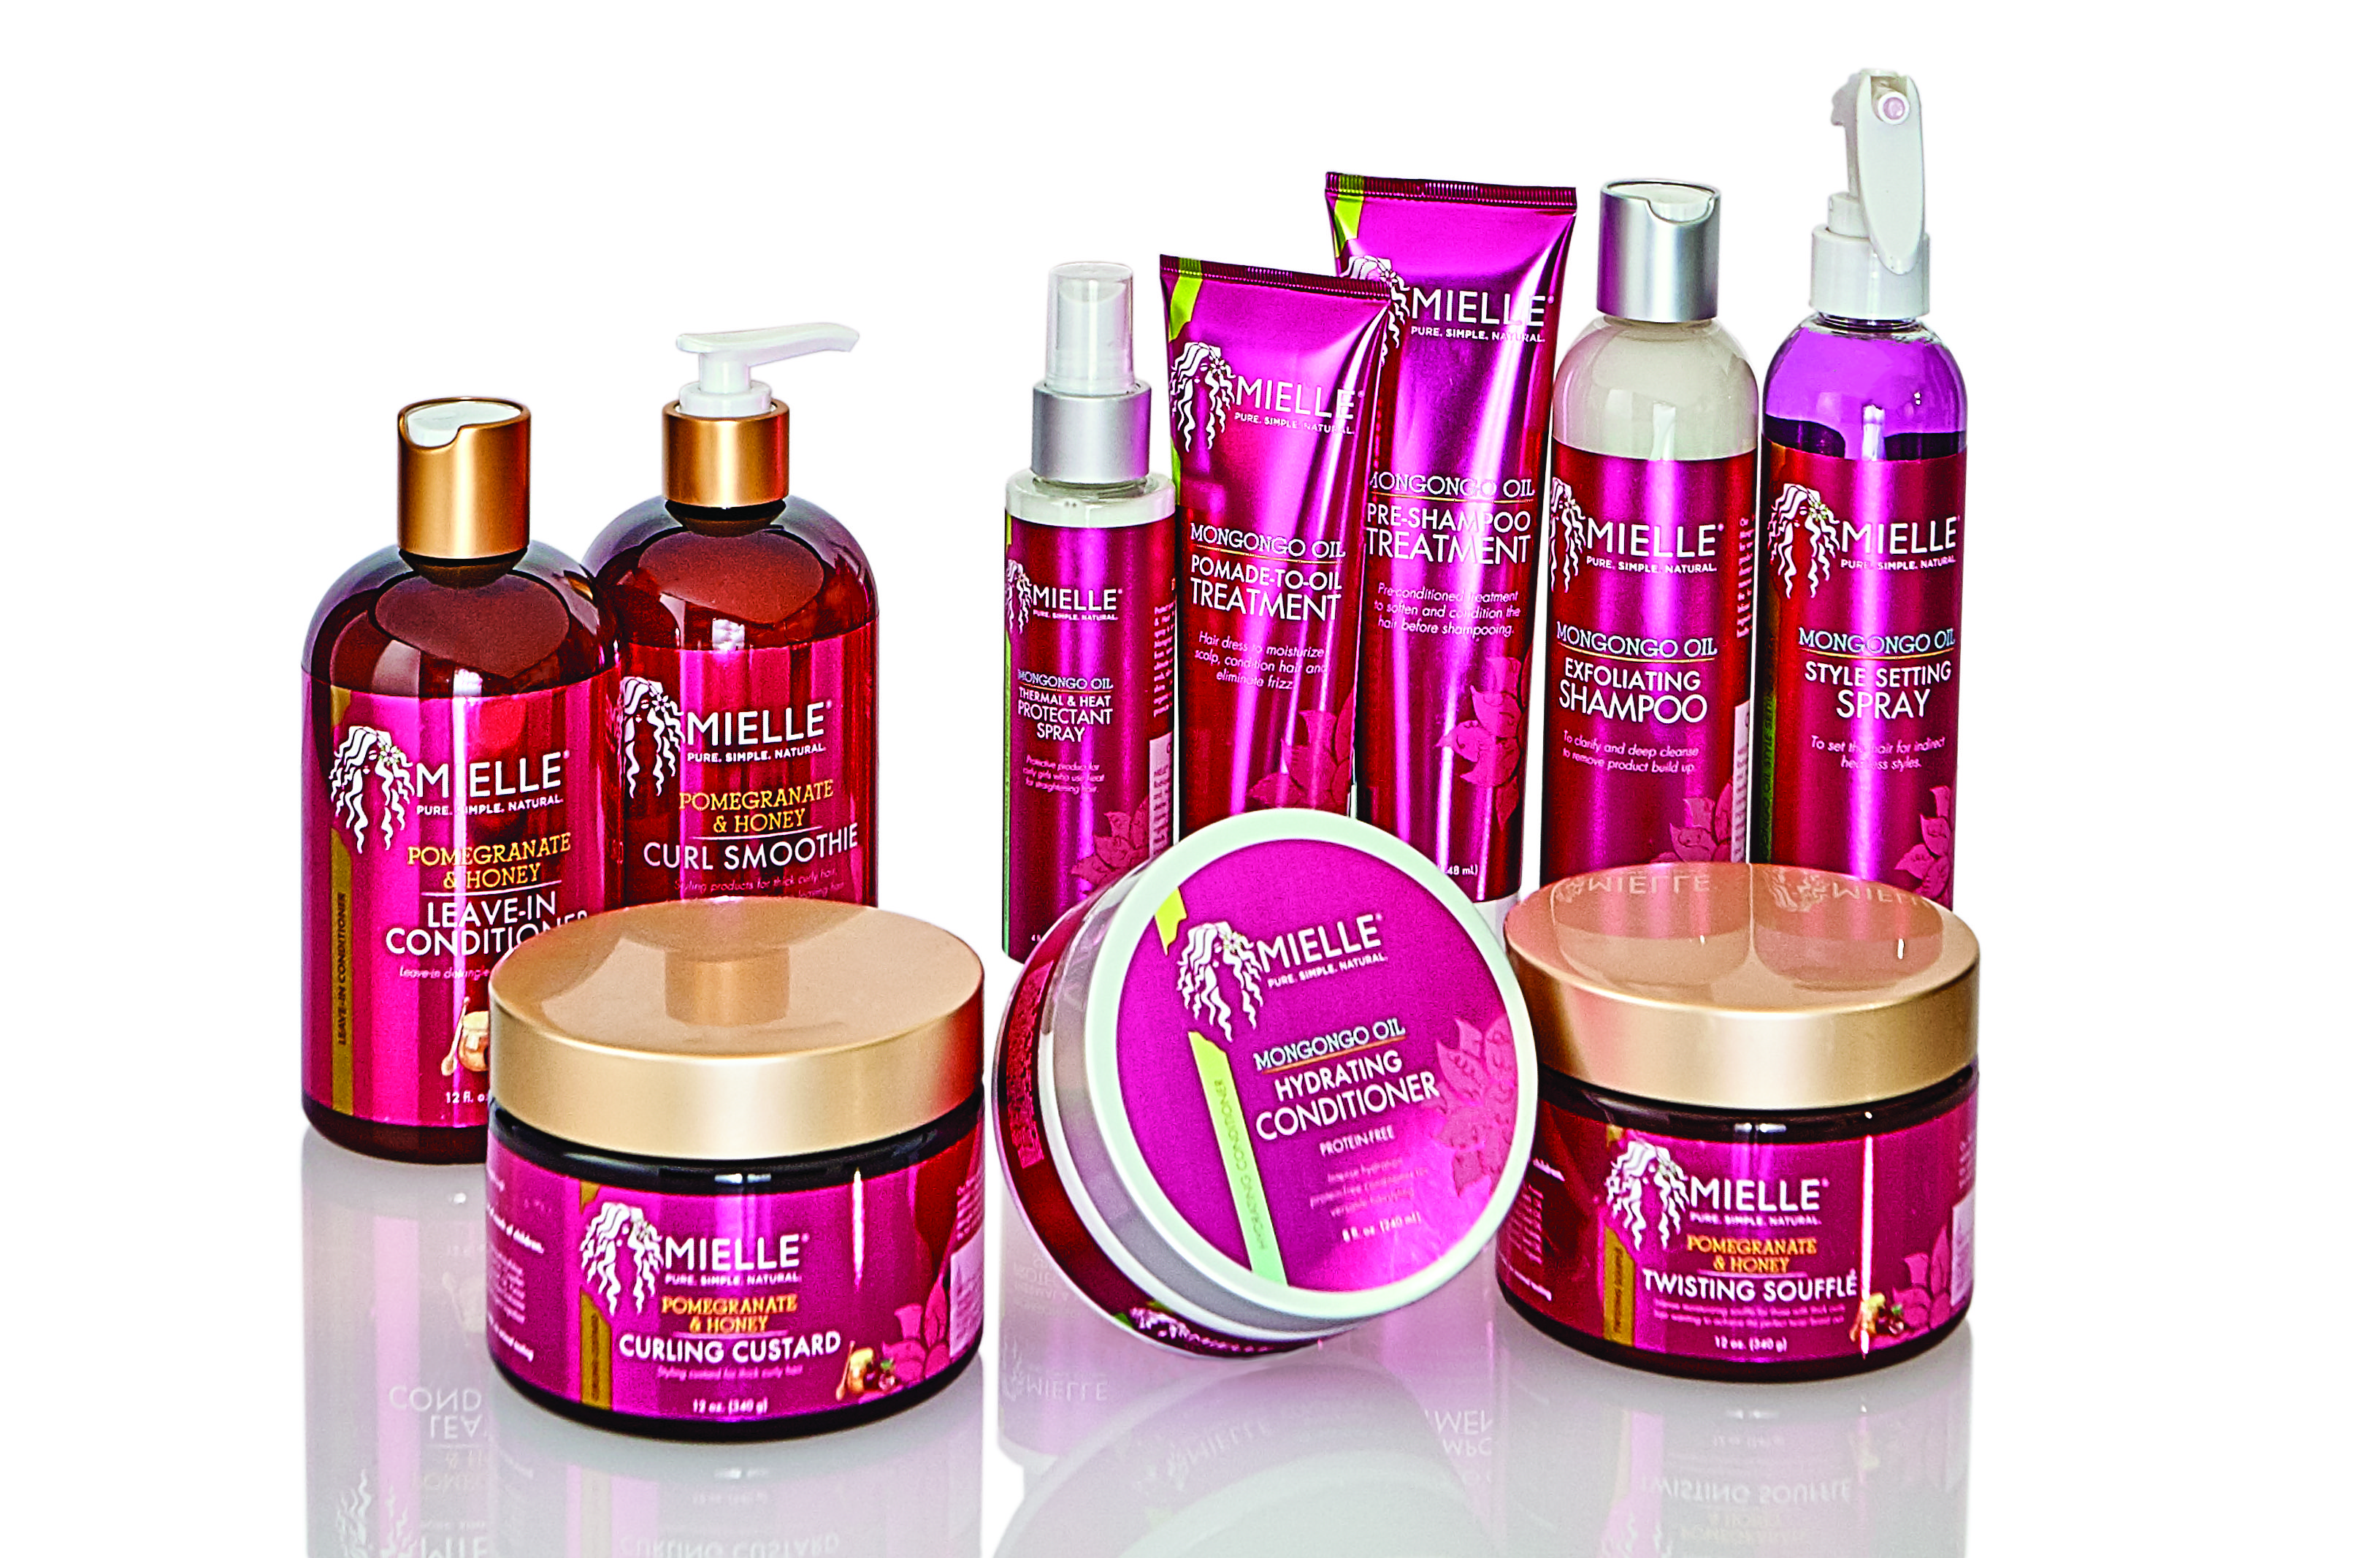 Mielle Organics is a brand that gained traction through Sally Beauty.